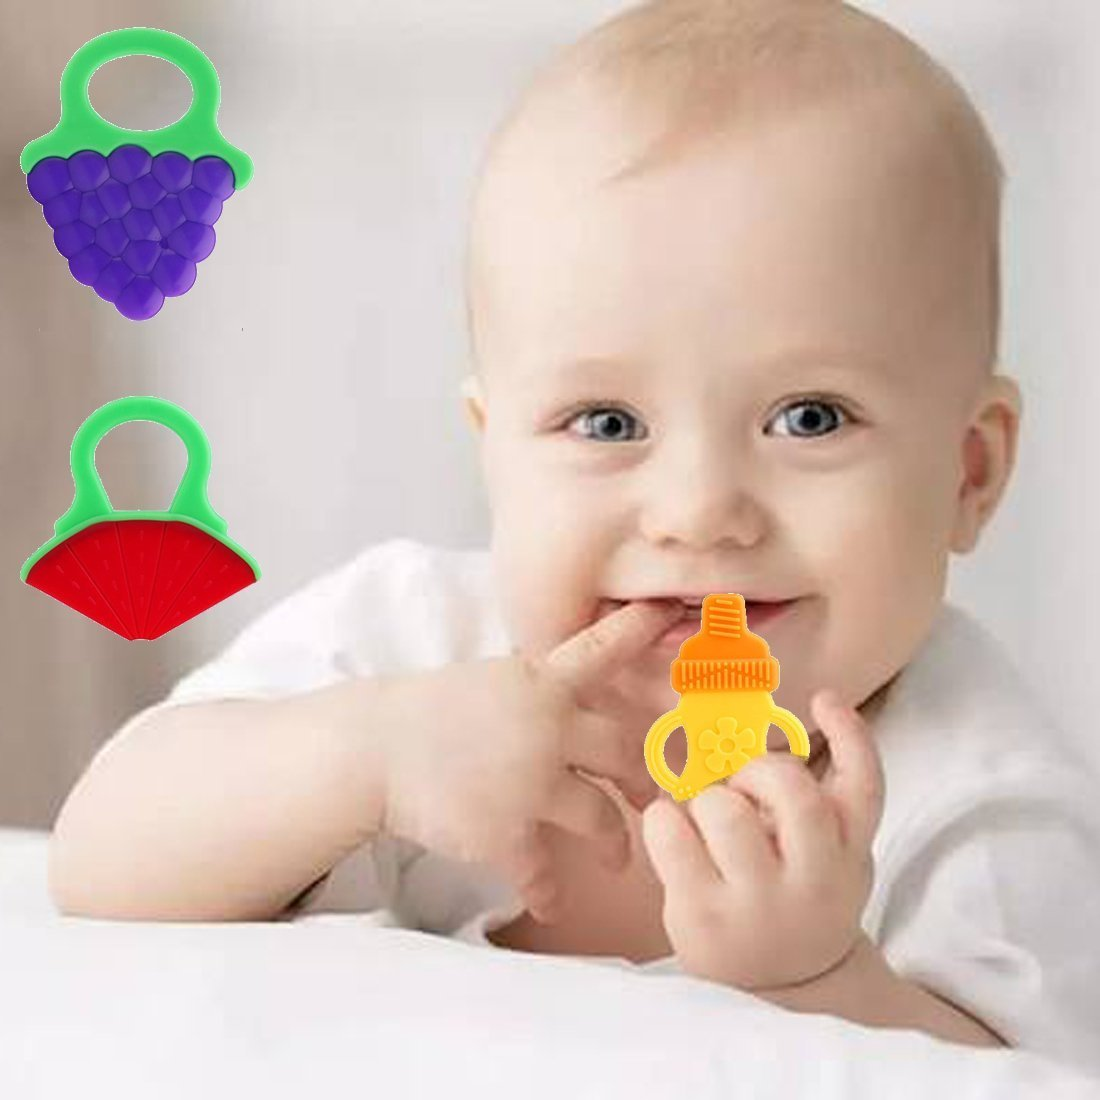 Bagvhandbagro Baby Teething Chew Toys Soft and Chewy 6 Pack No BPA or Phthalates frozen toys Safe Teether,FDA Approved Latex